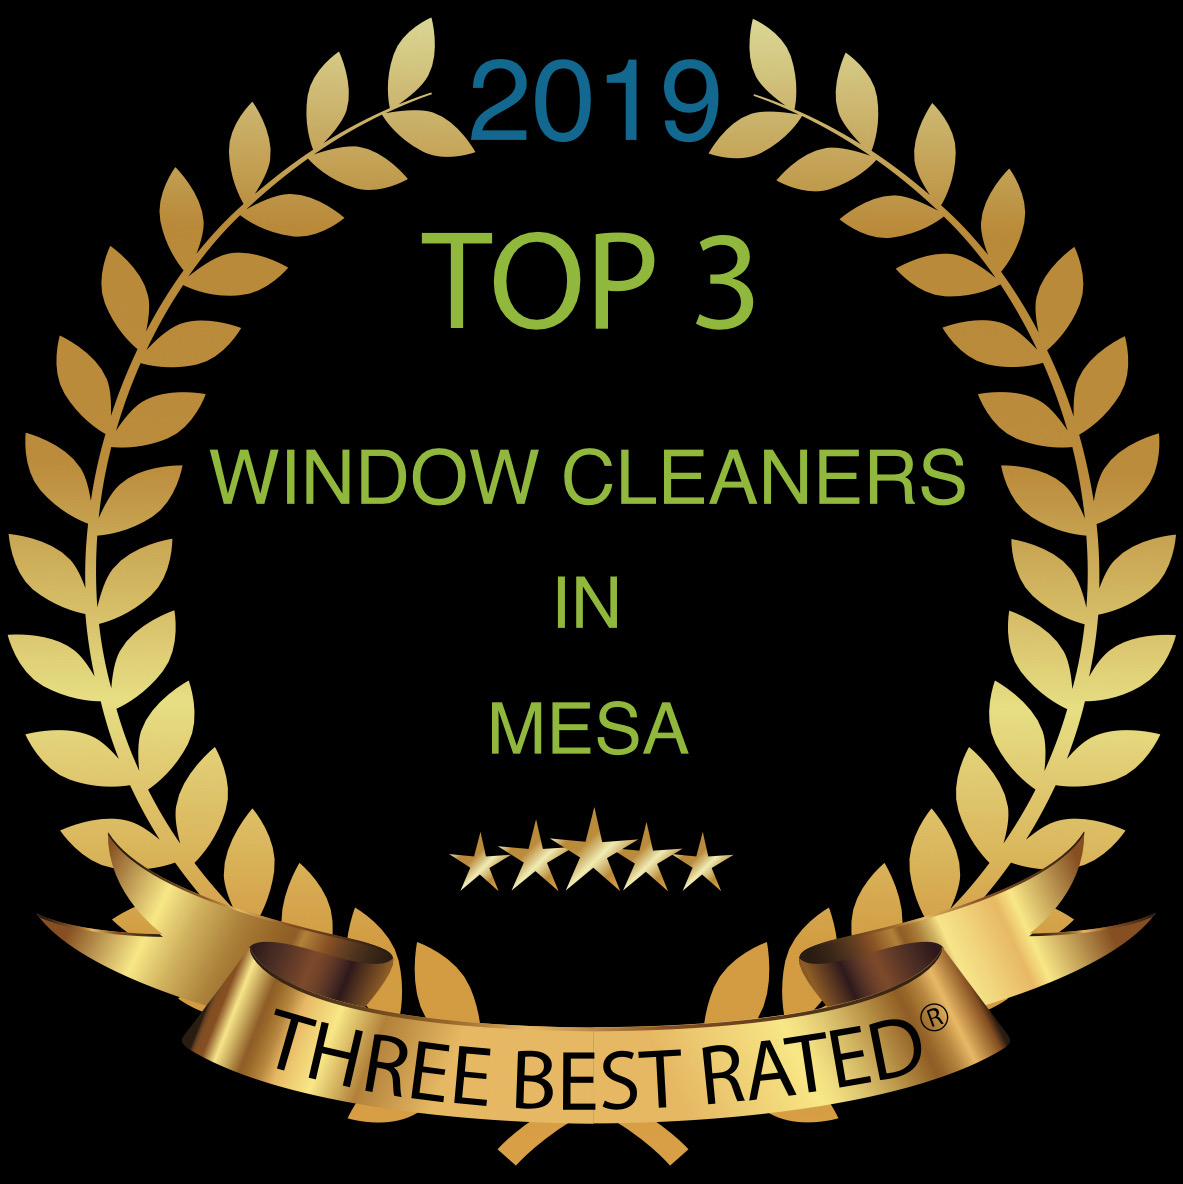 Voted #1 Window Cleaning Company in Arizona - Olsen Brothers